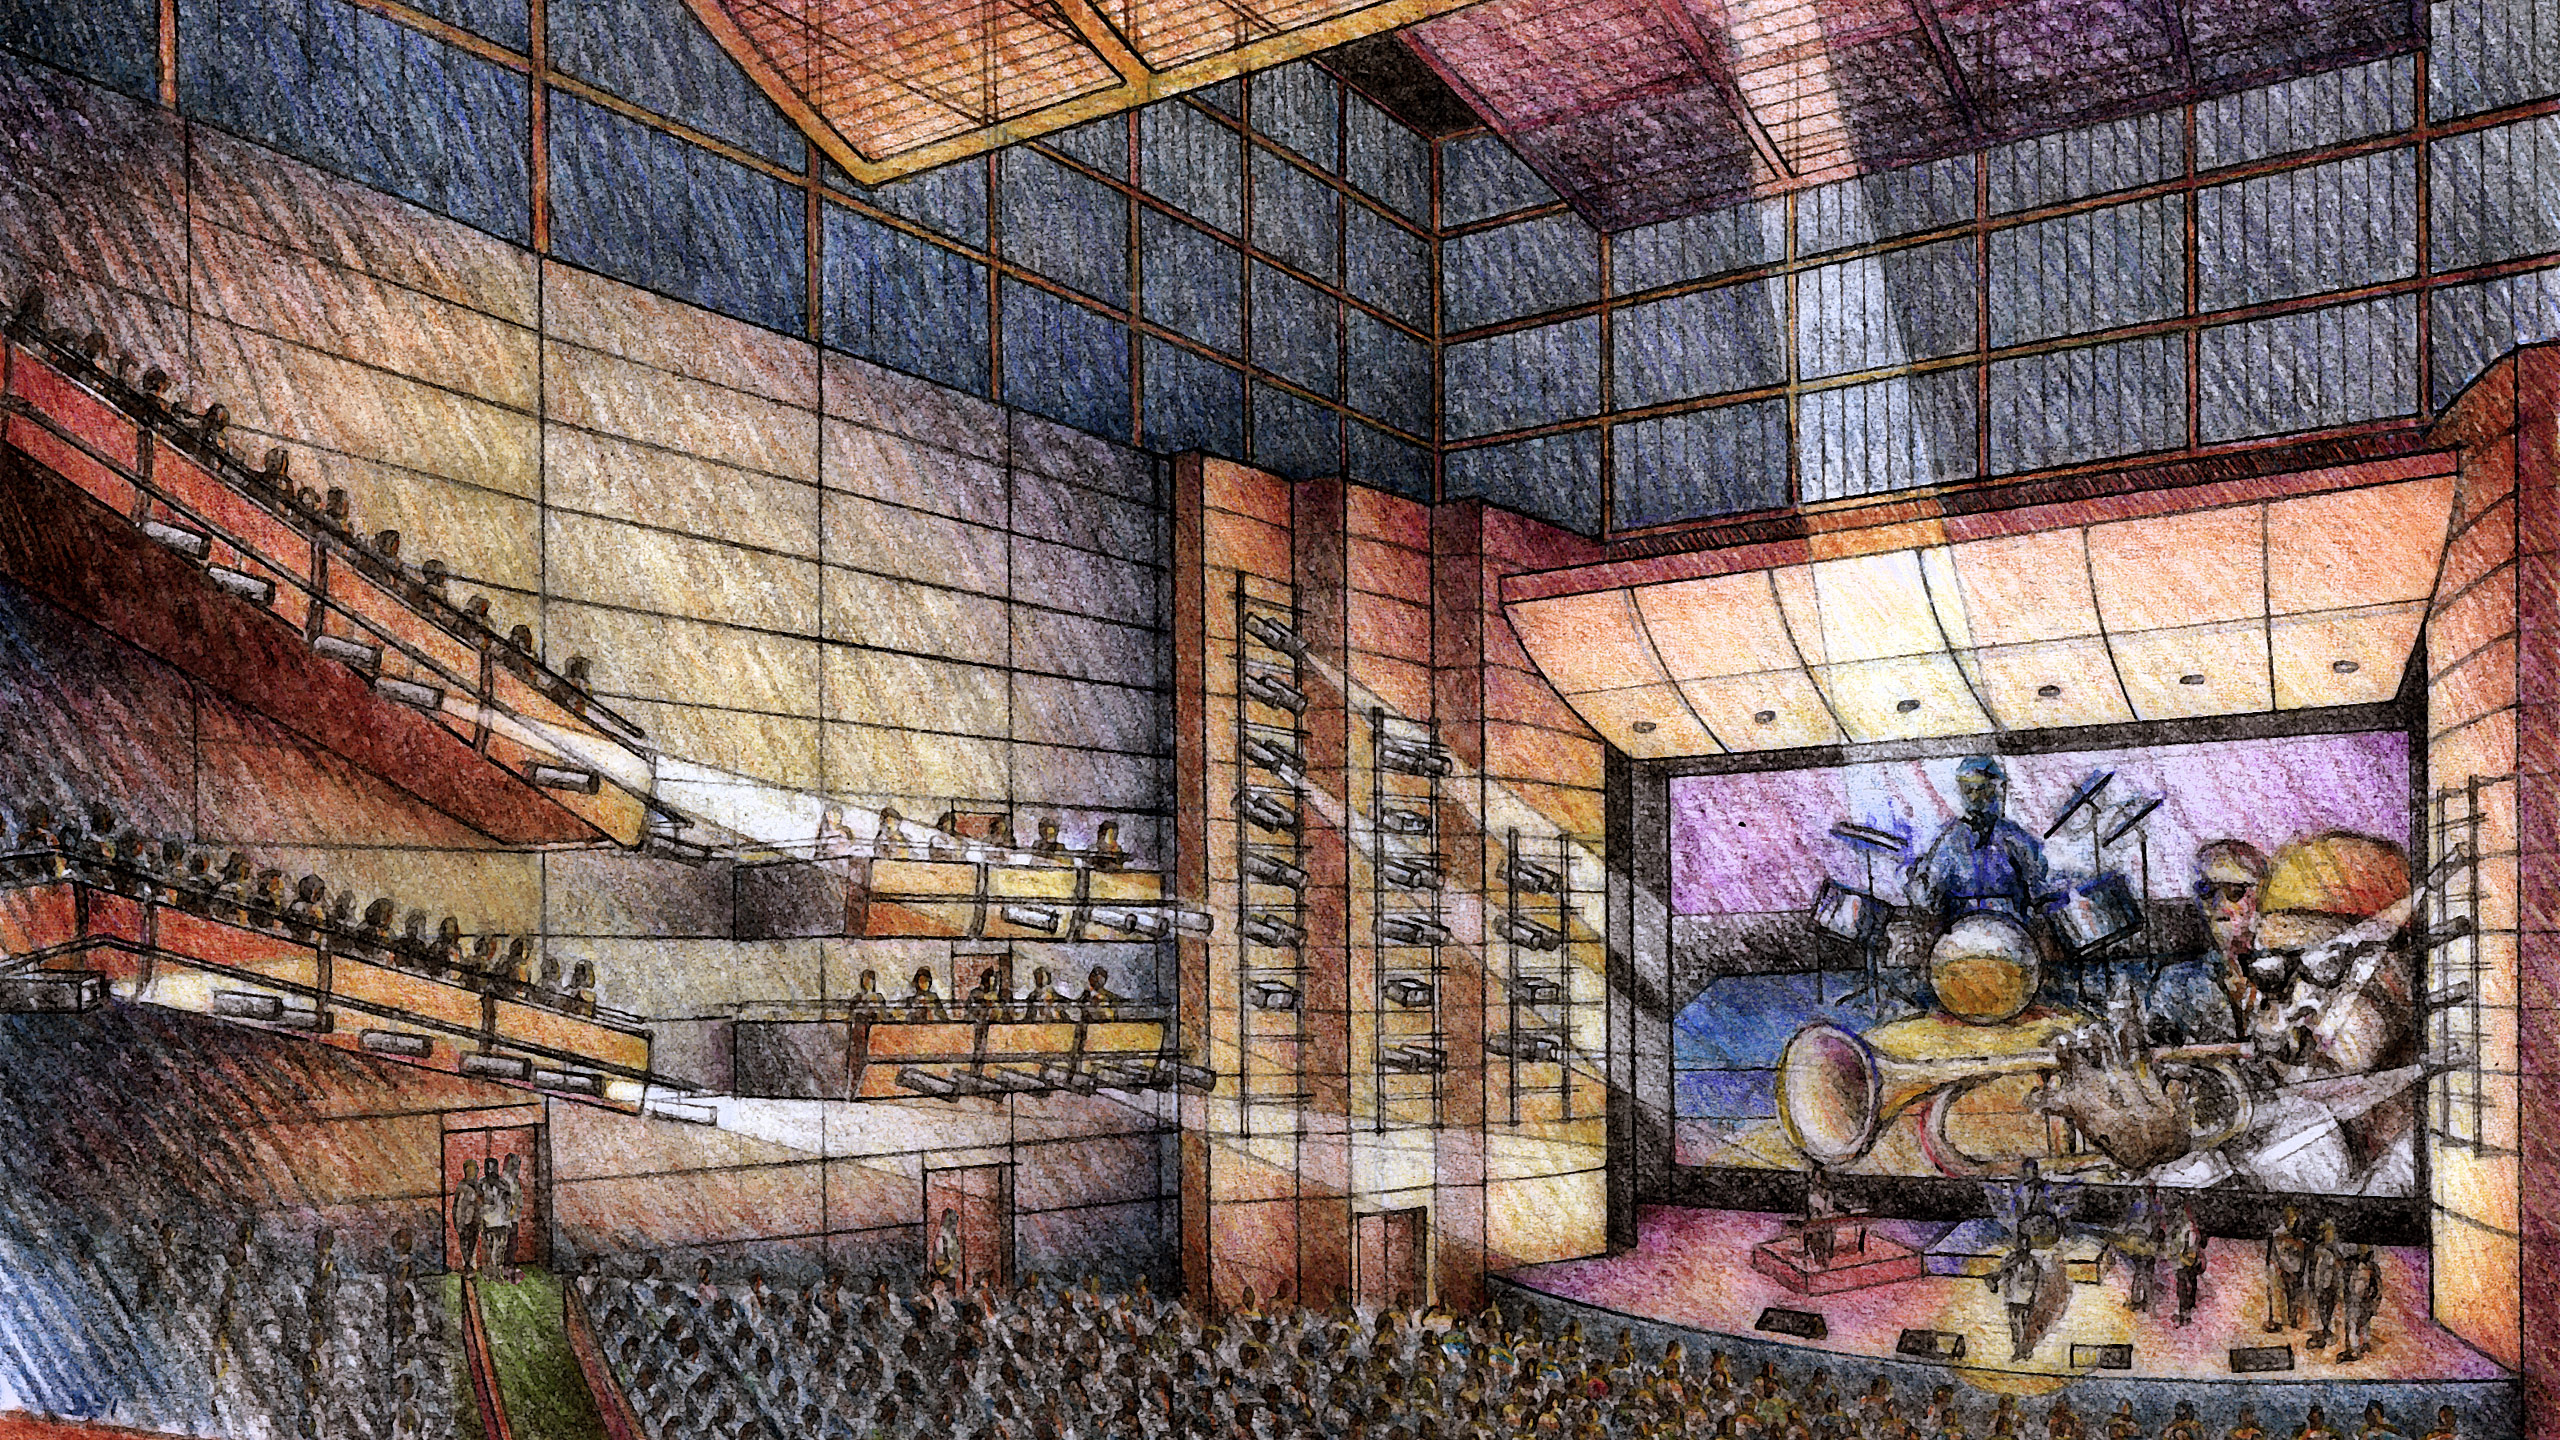 Bass Concert Hall Renovation and Addition at University of Texas at Austin / image 1